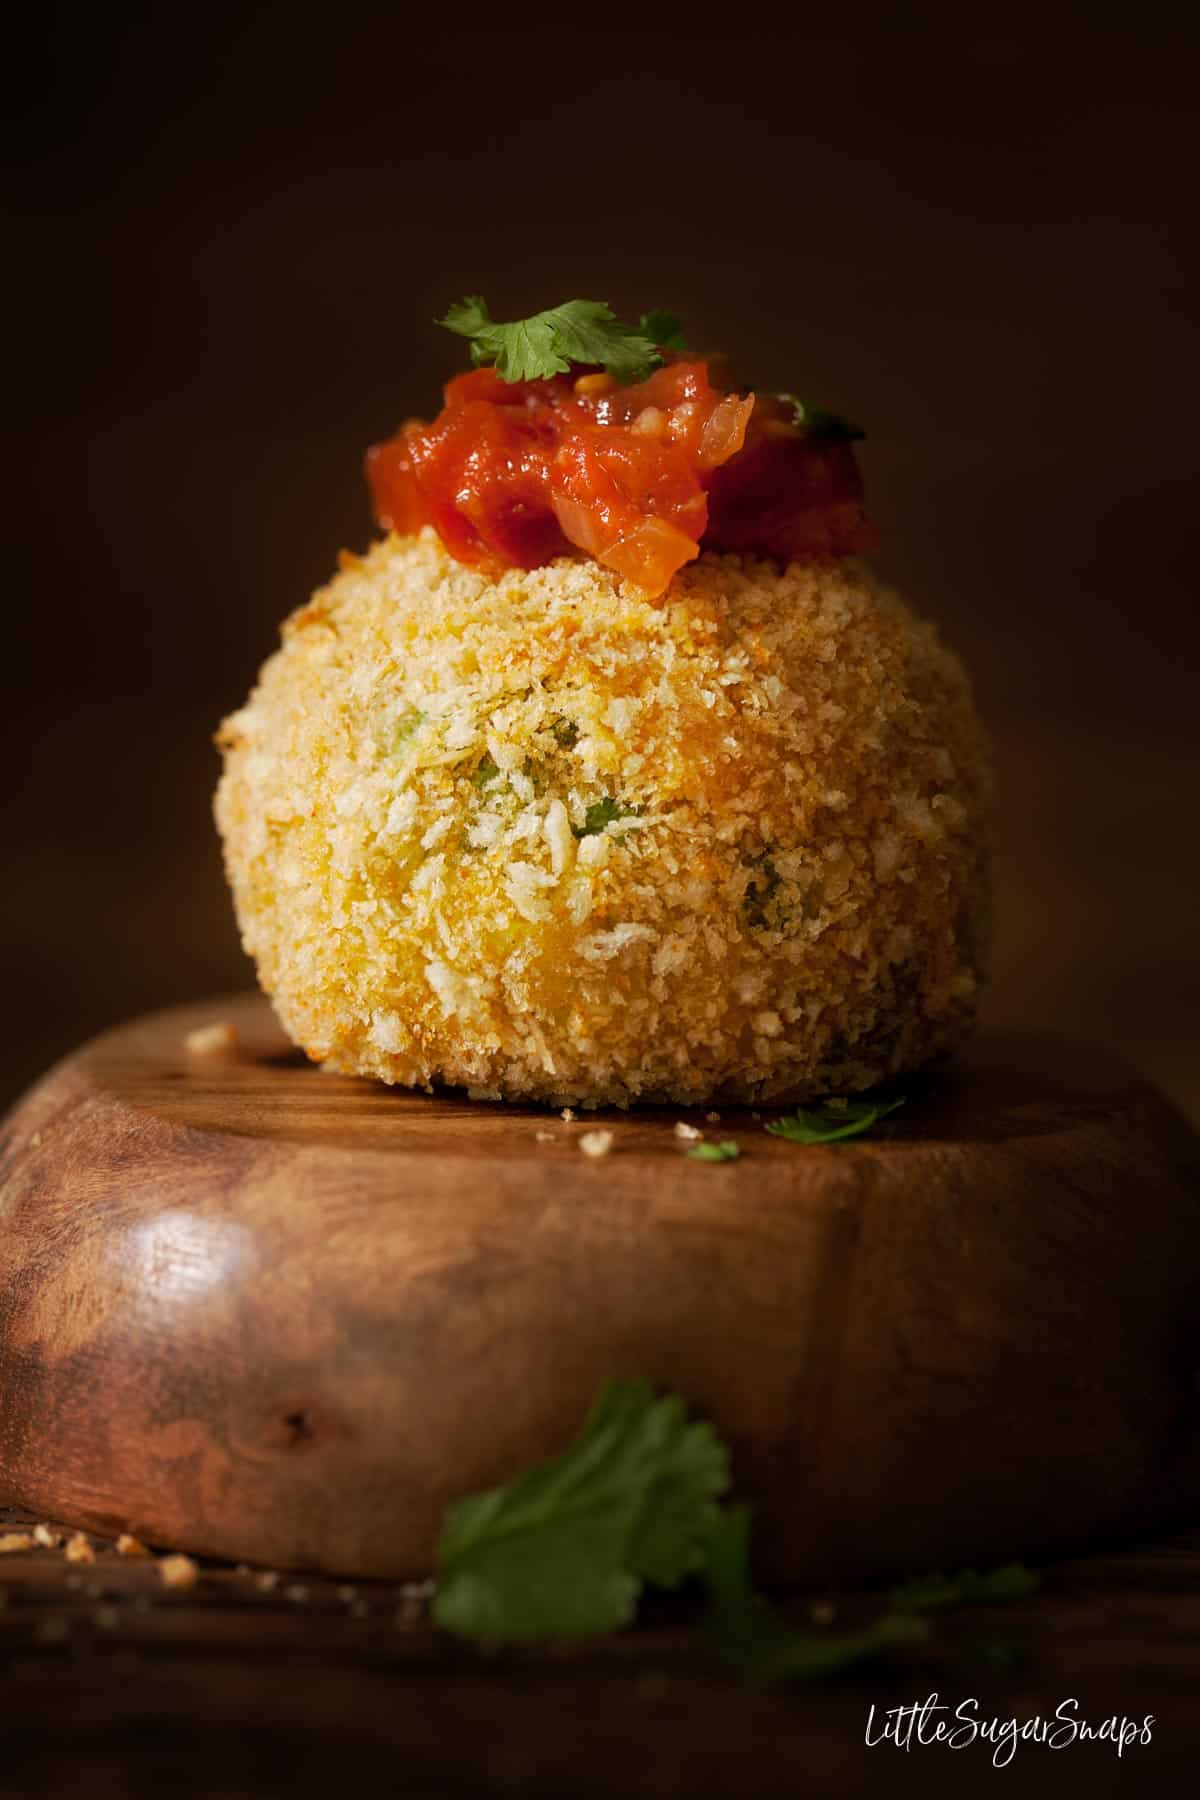 A smoked haddock fish cake with a spoonful of spiced tomato sauce